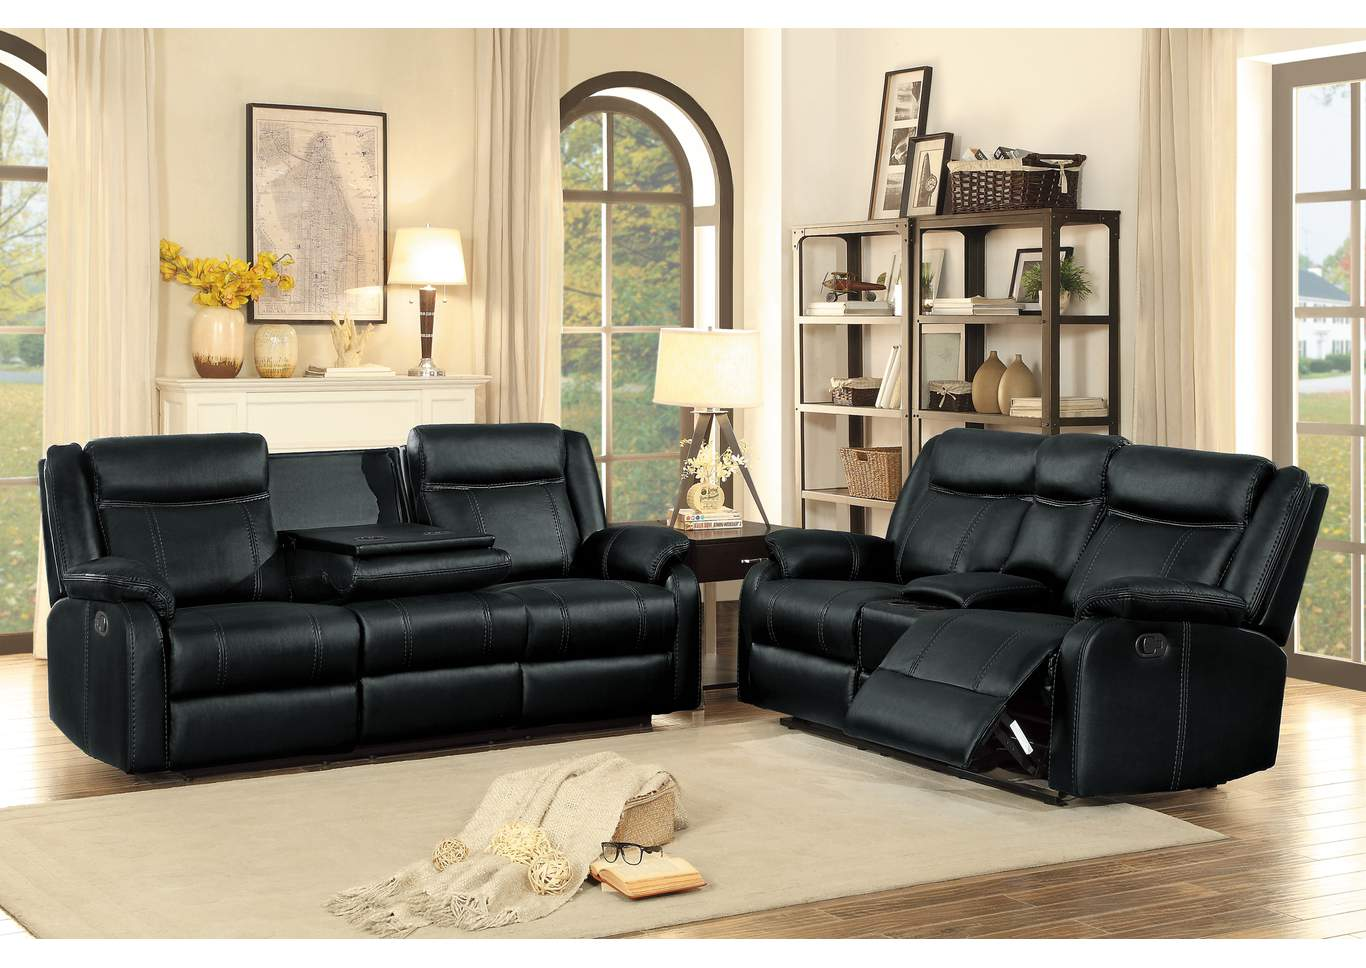 Black Double Reclining Sofa with Center Drop-Down Cup Holders,Homelegance